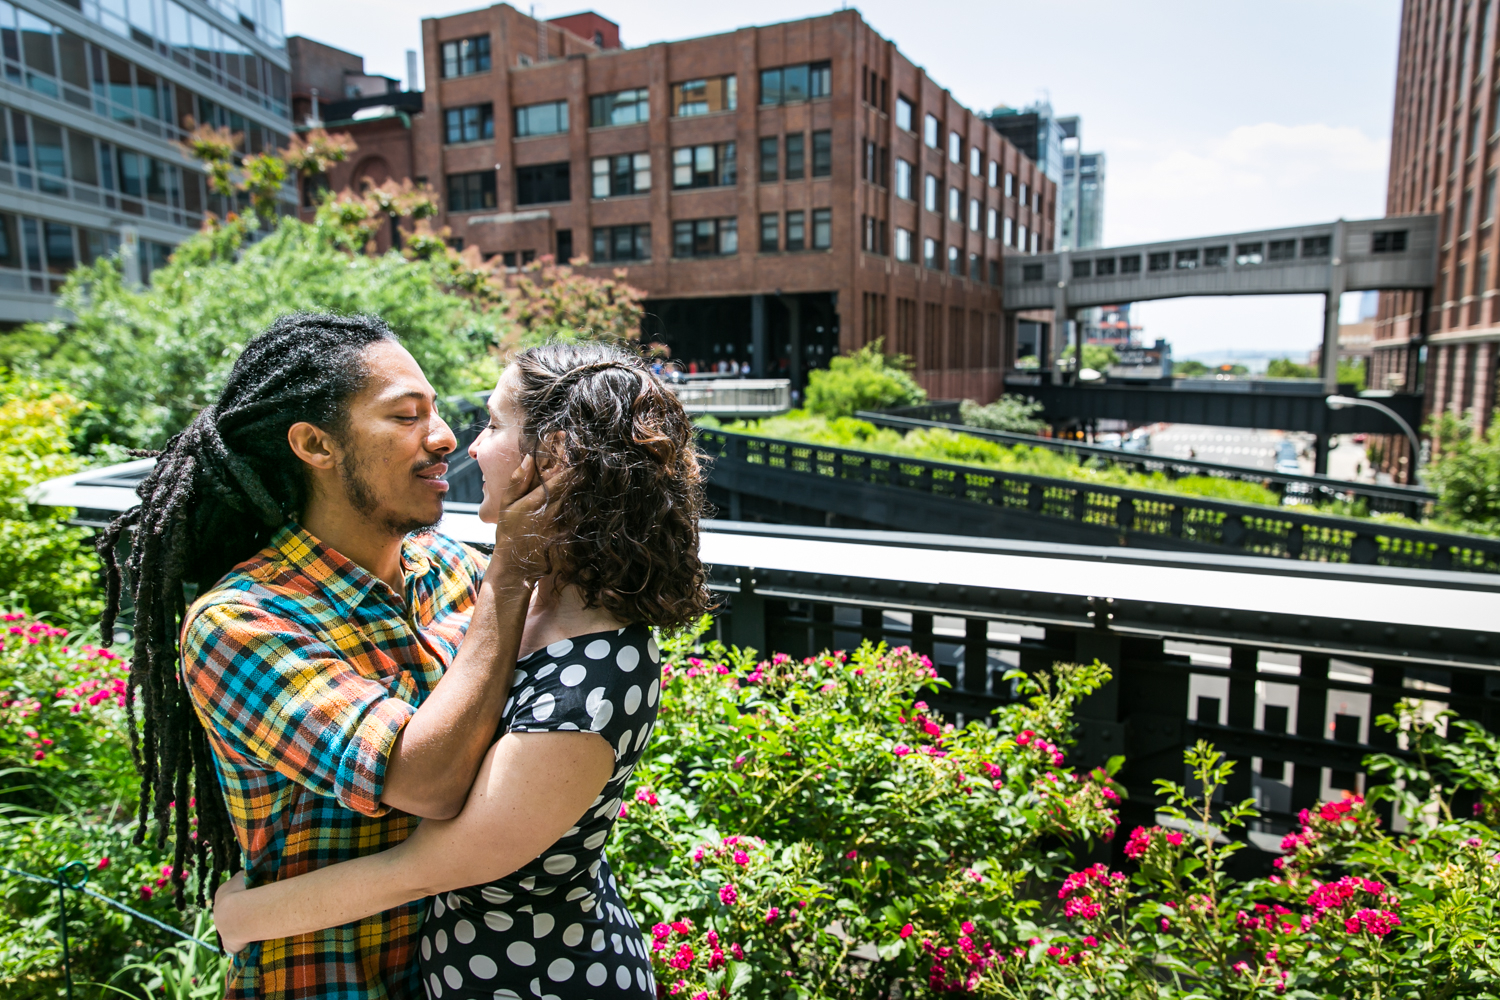 Man touching woman's face on the High Line